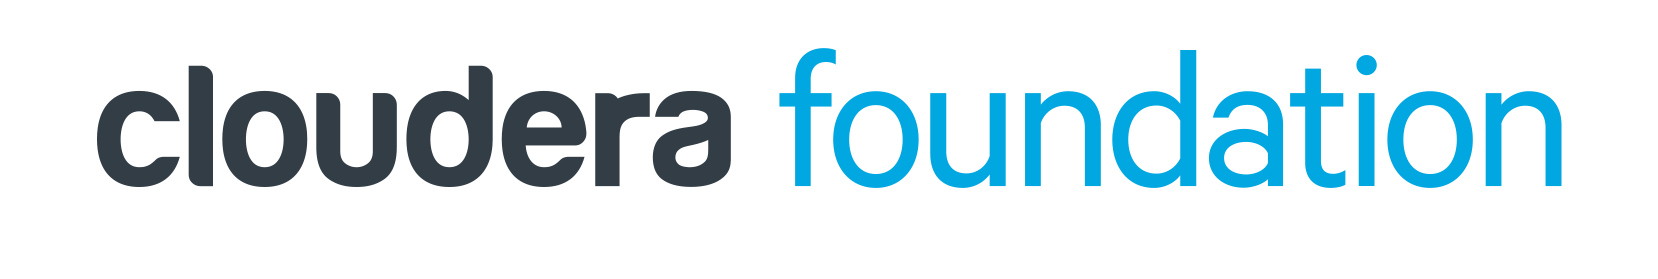 Cloudera Foundation